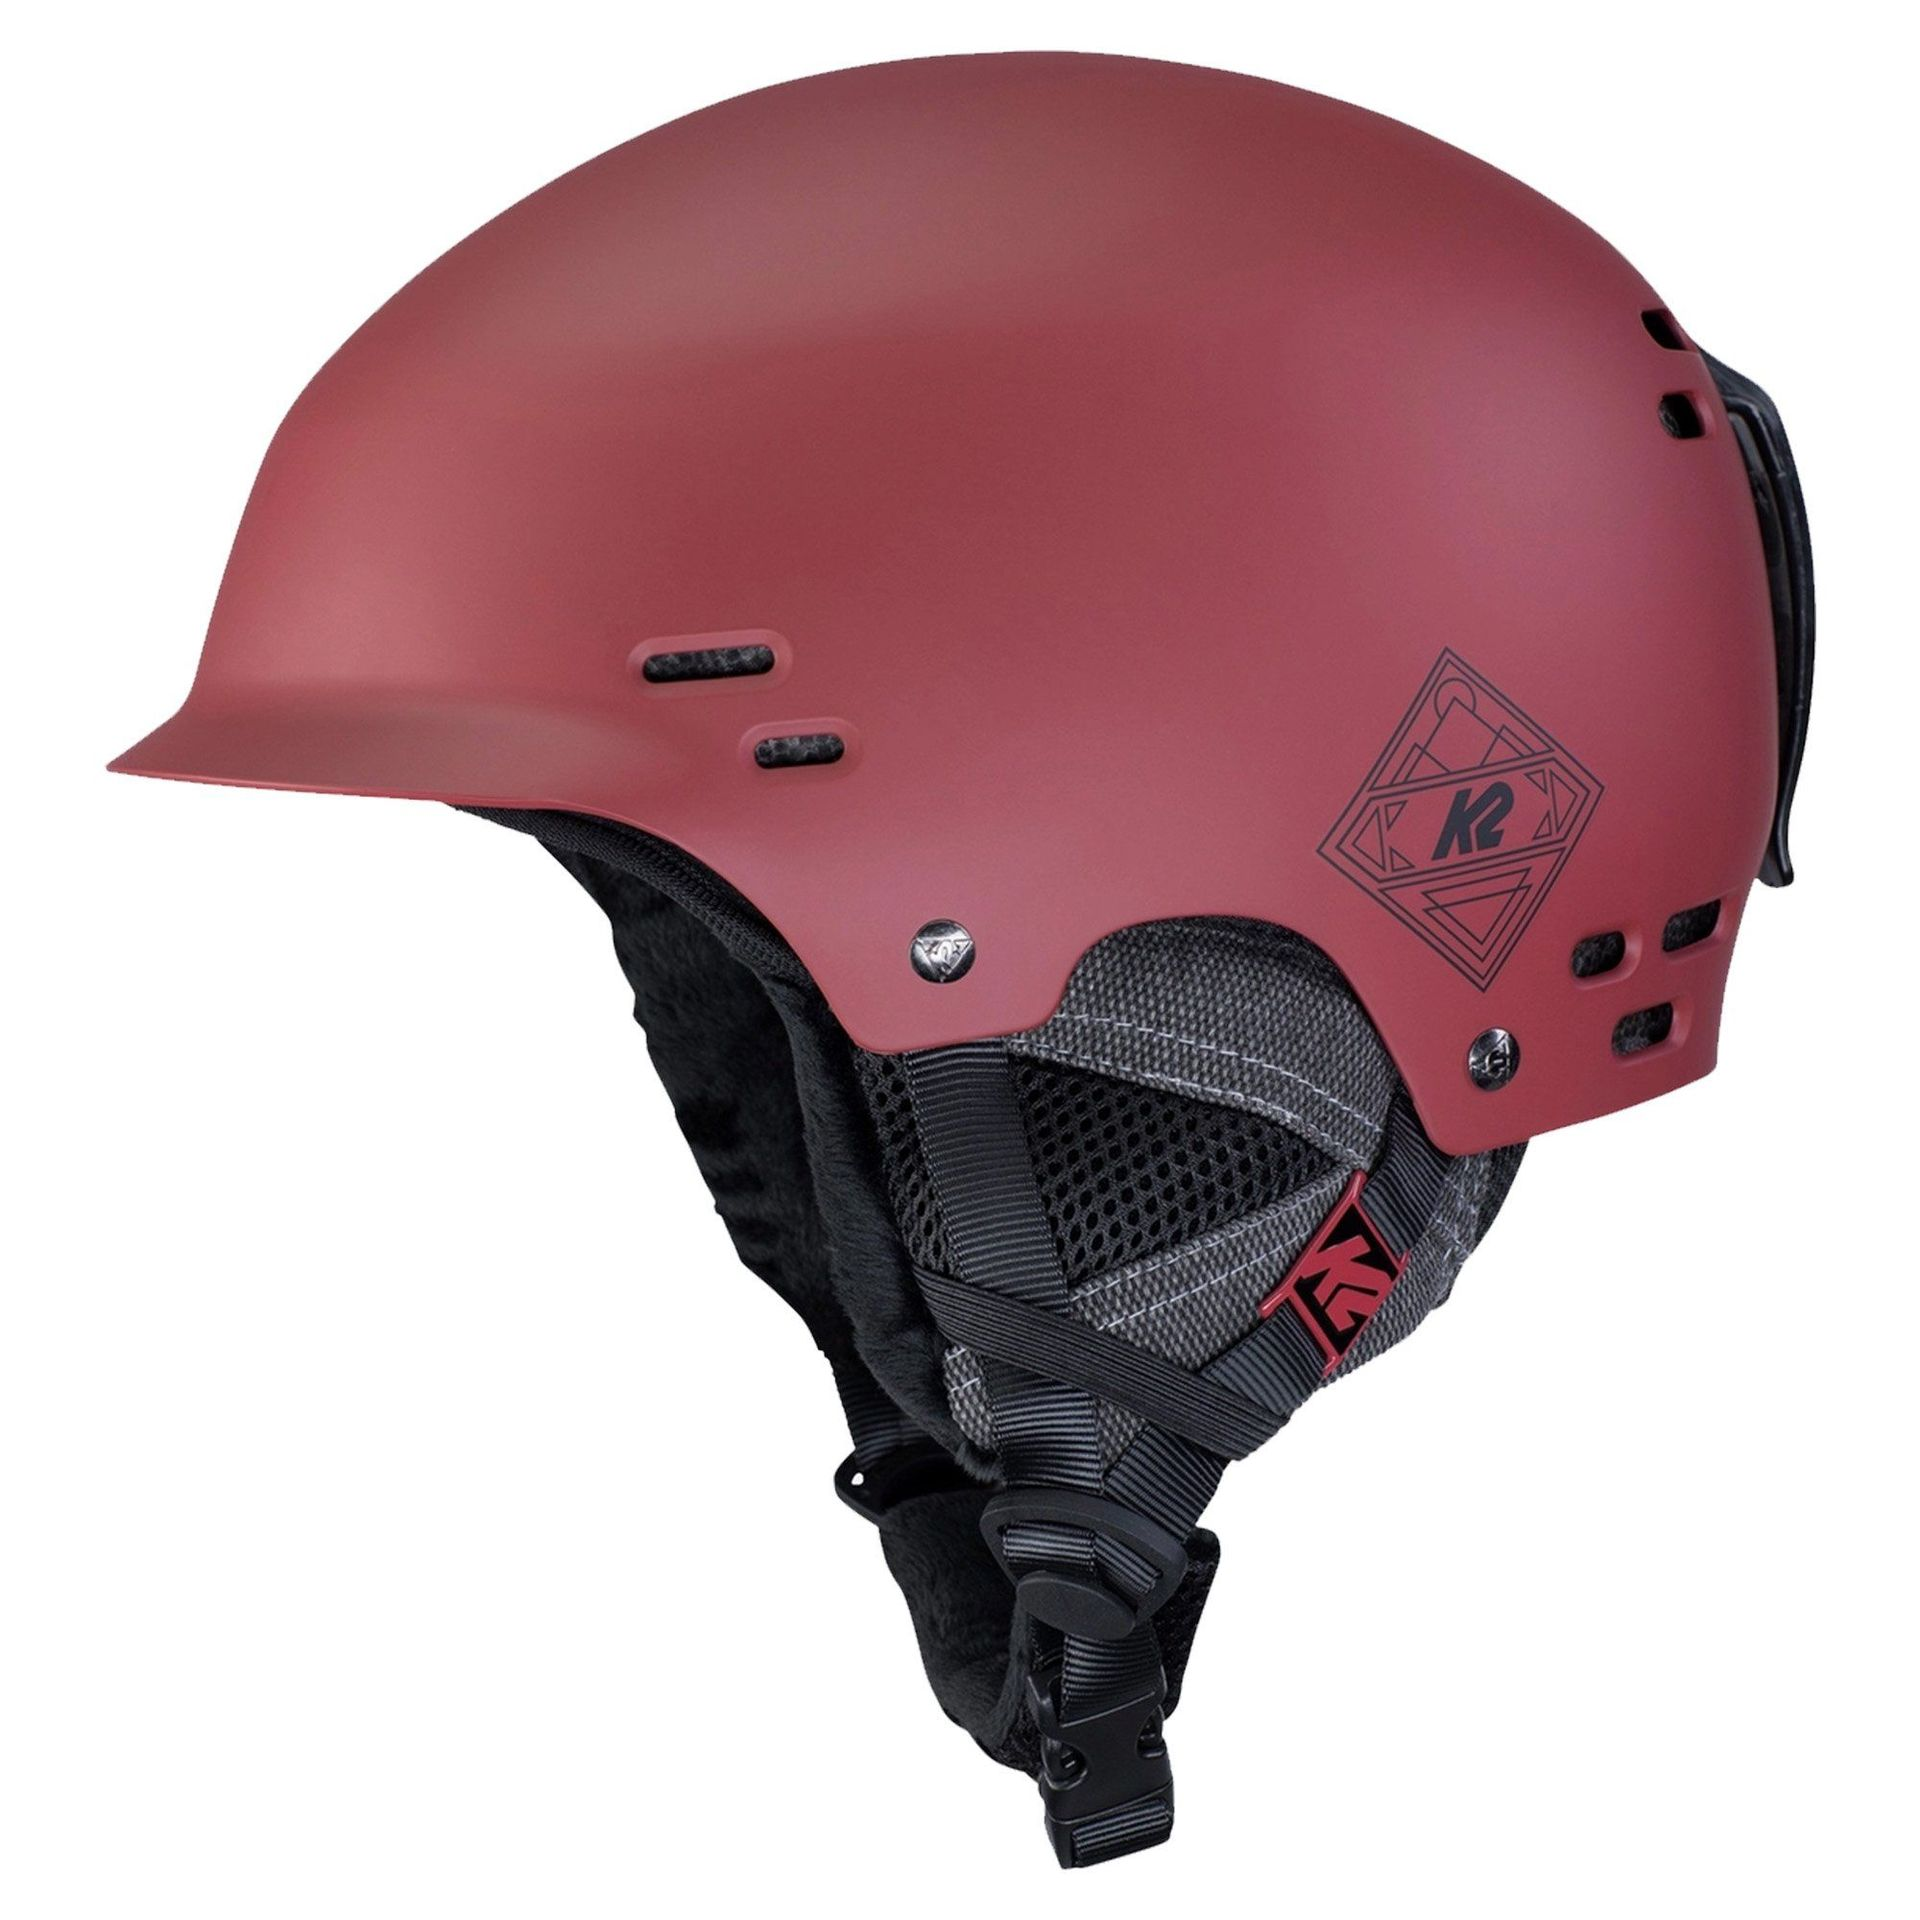 KASK K2 THRIVE 10D4004-42 DEEP RED